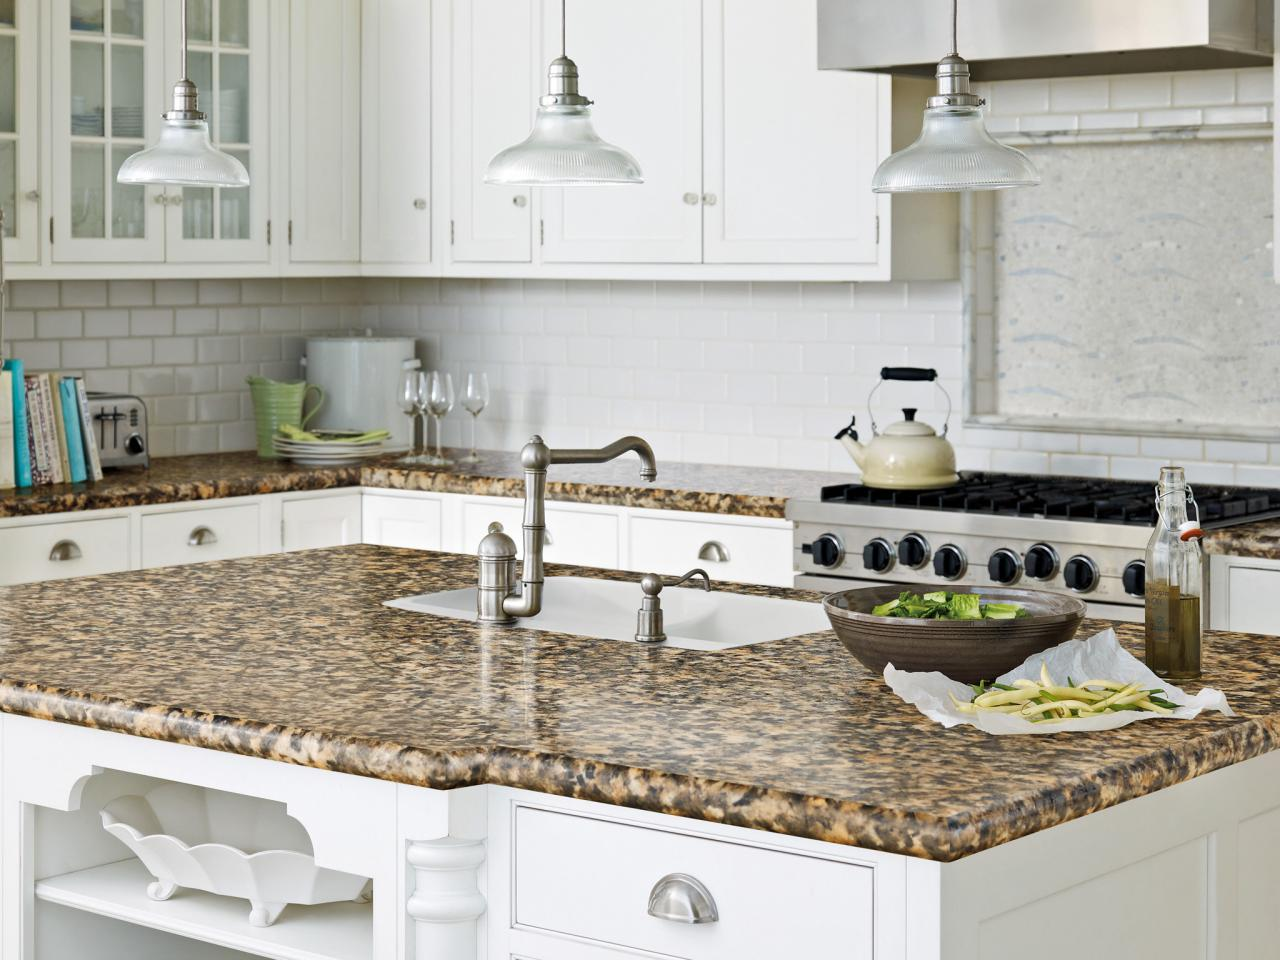 Uncategorized Best Countertop For Kitchen laminate kitchen countertops pictures ideas from hgtv countertops